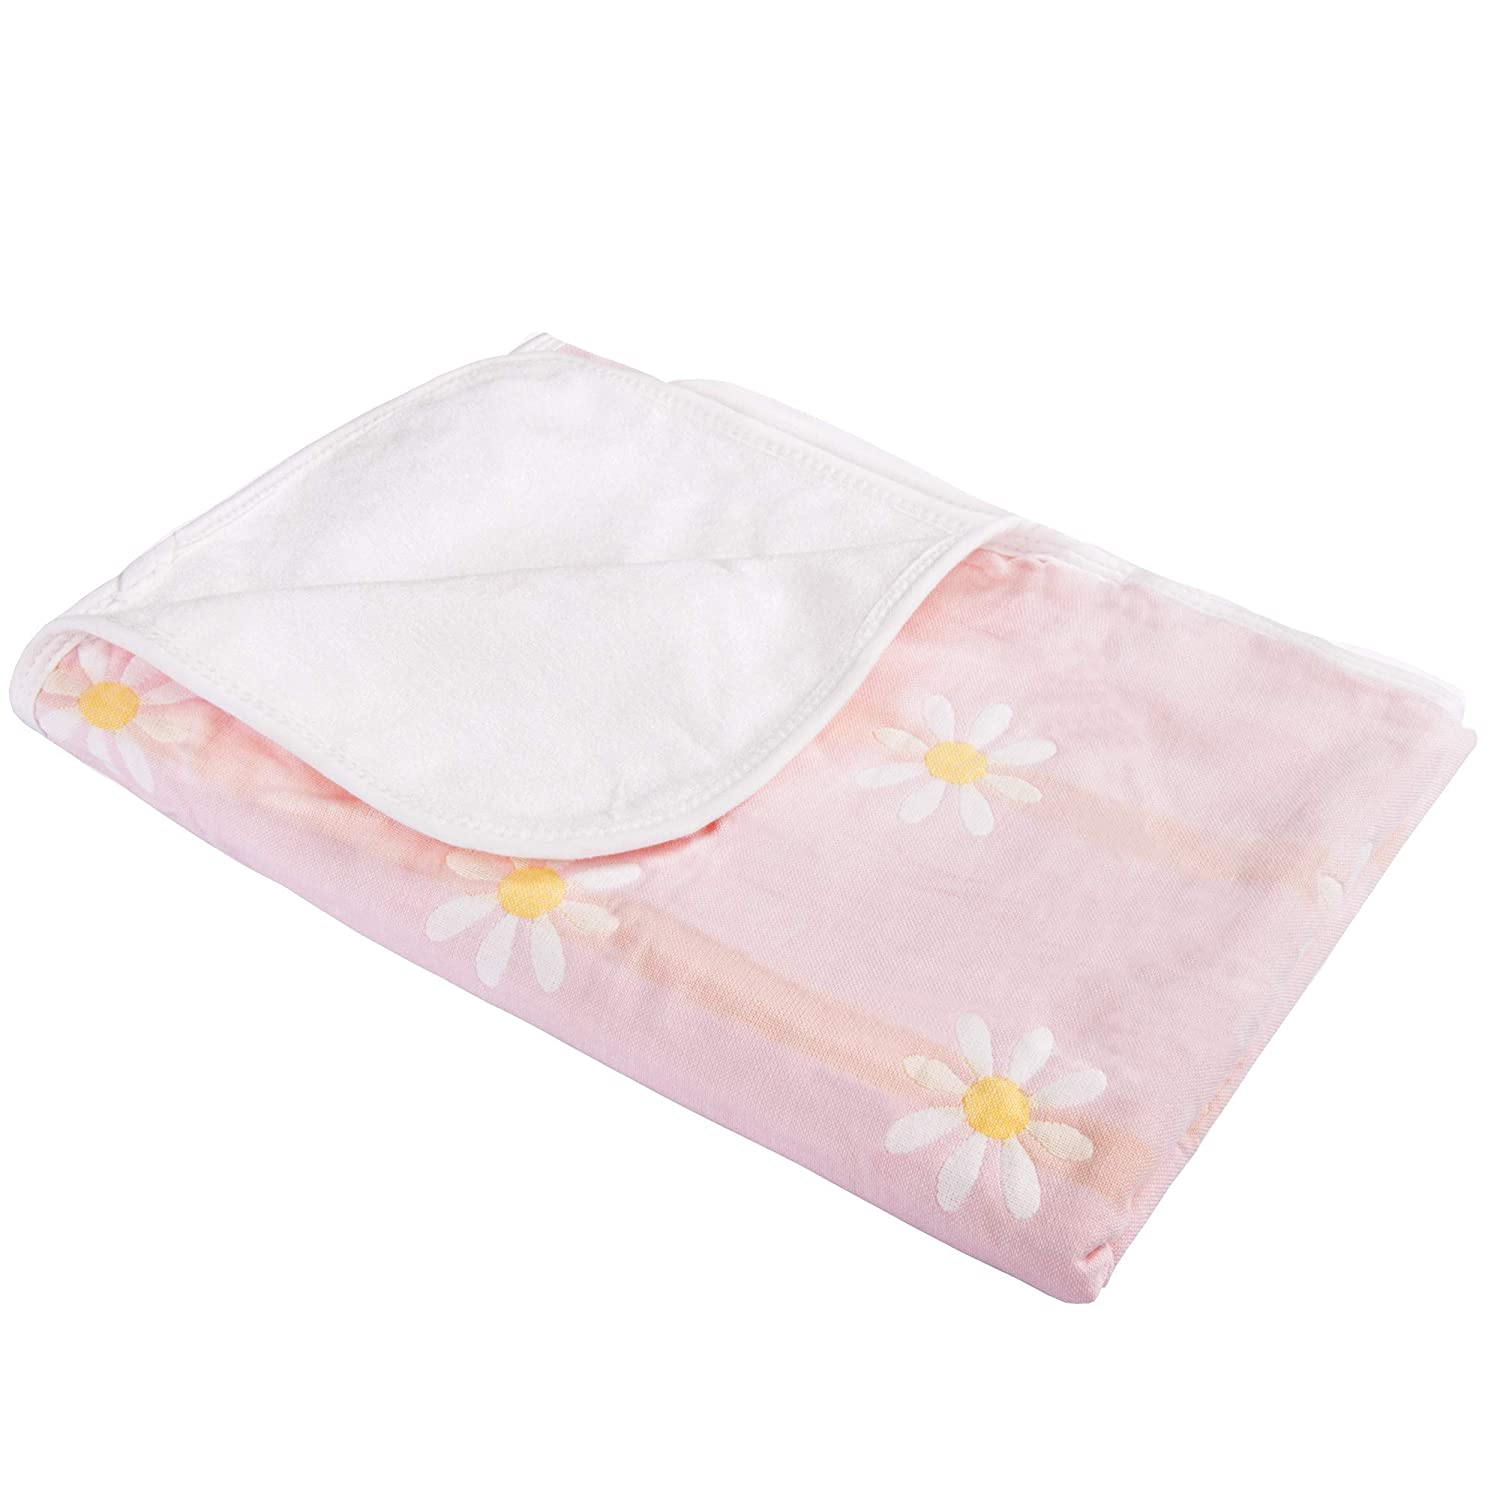 NTBAY Baby Crib Diaper Changing Pad Muslin Cotton Bamboo Fiber Breathable Waterproof Underpads Mattress Sheet Protector with Flower Pattern, Pink, 25